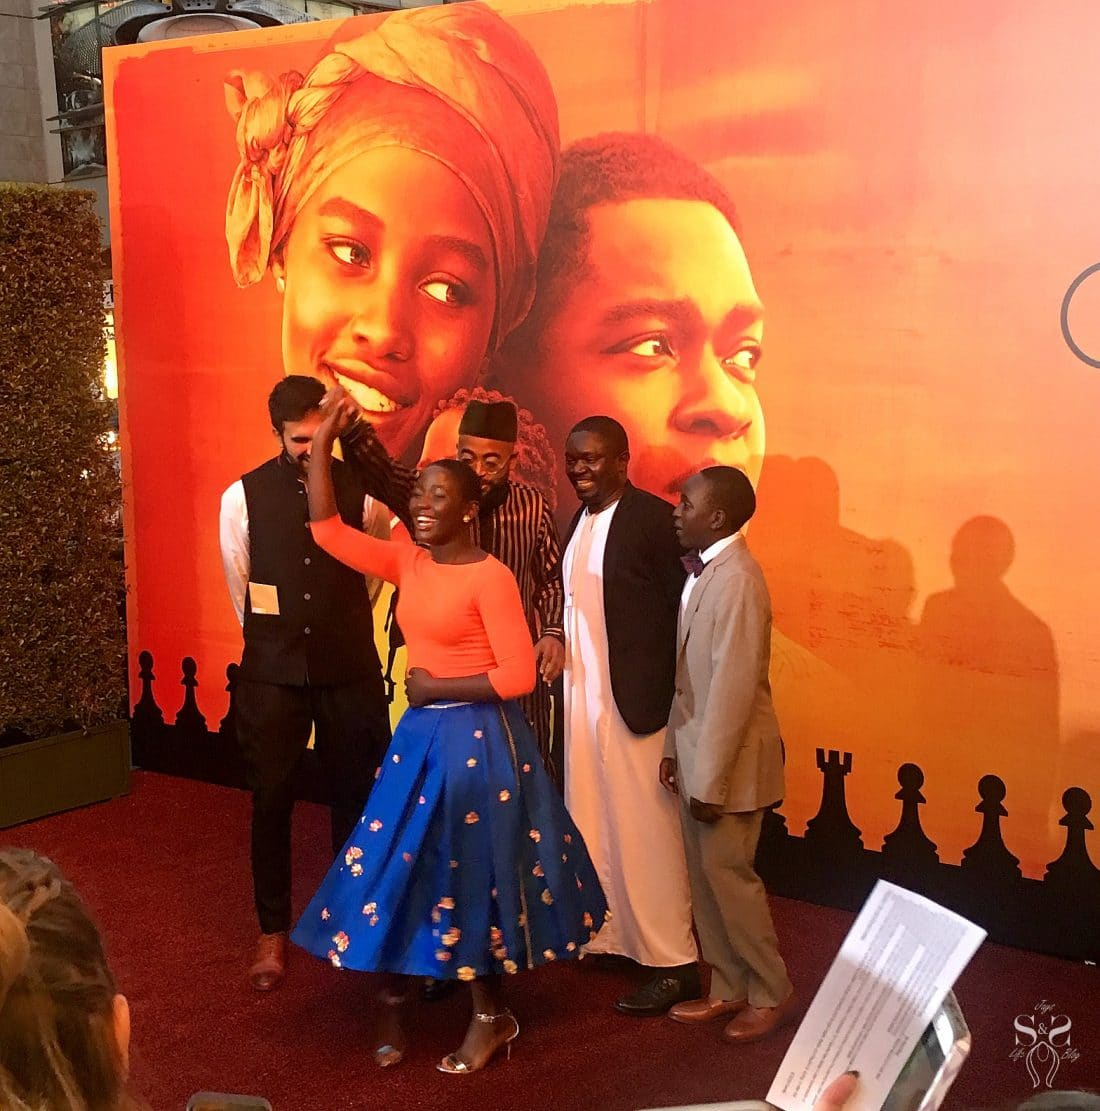 queen-of-katwe-walking-the-red-carpet-expierence-7